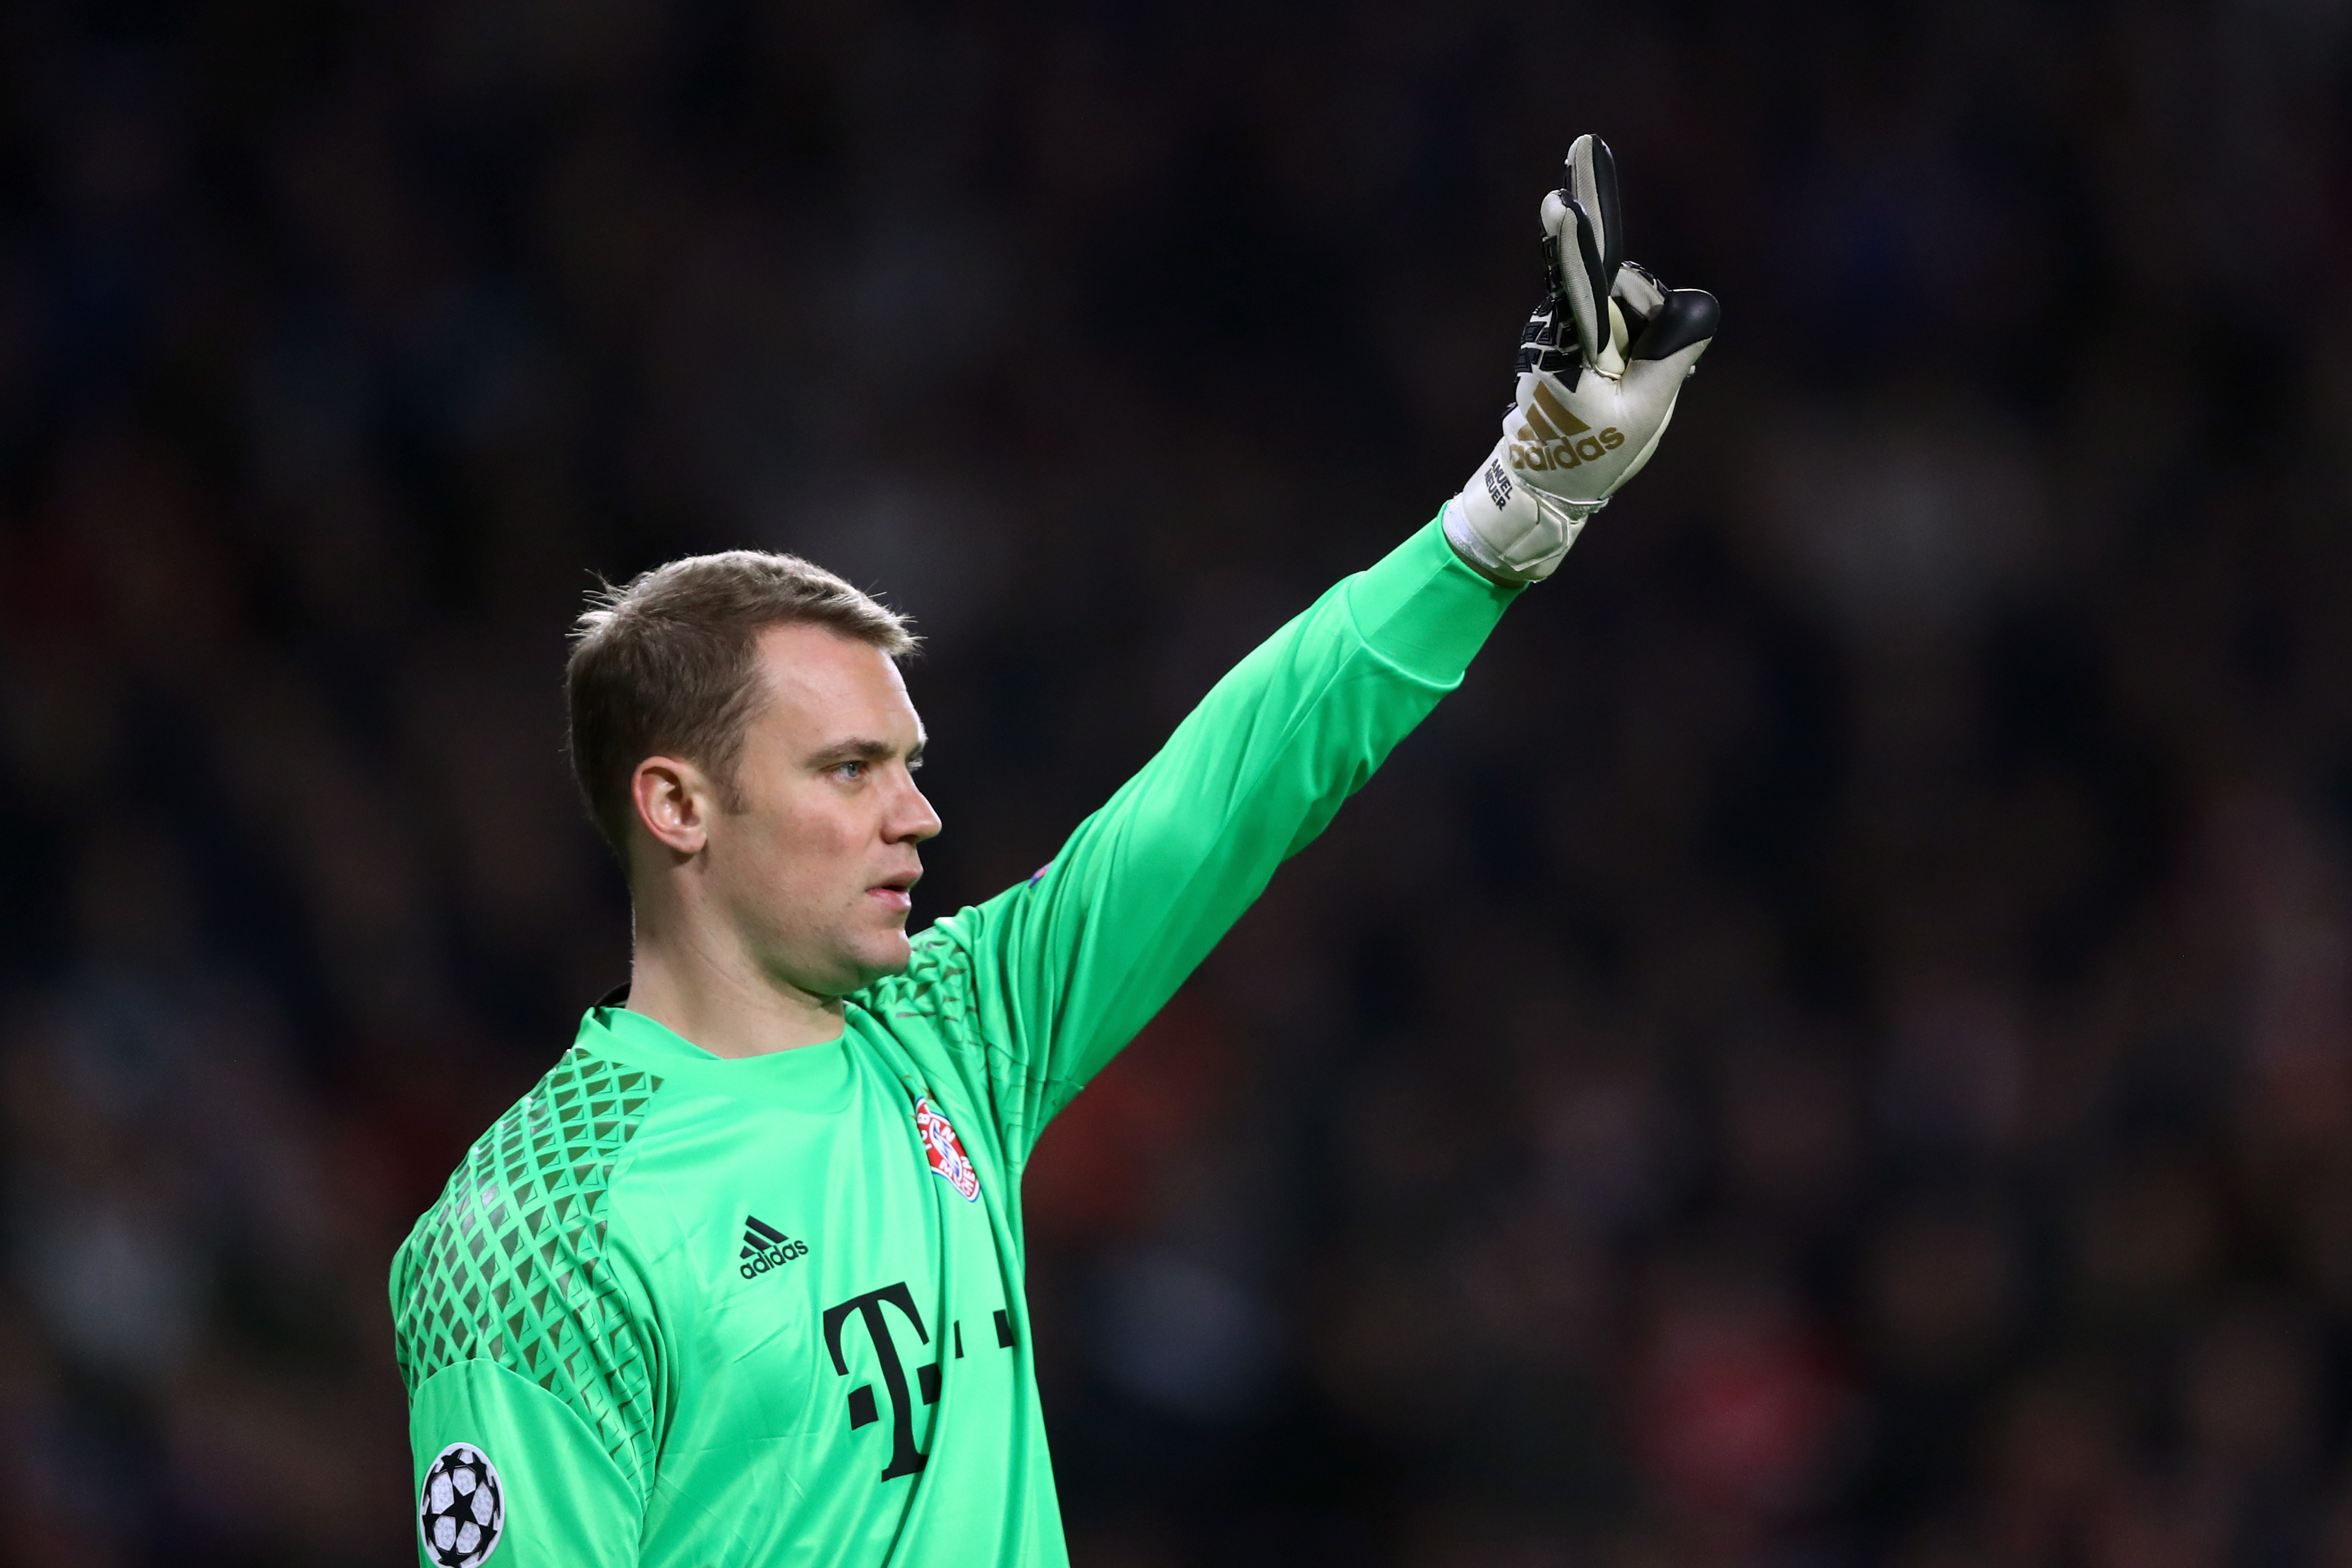 Barcelona have the successor to Manuel Neuer in Marc André ter Stegen